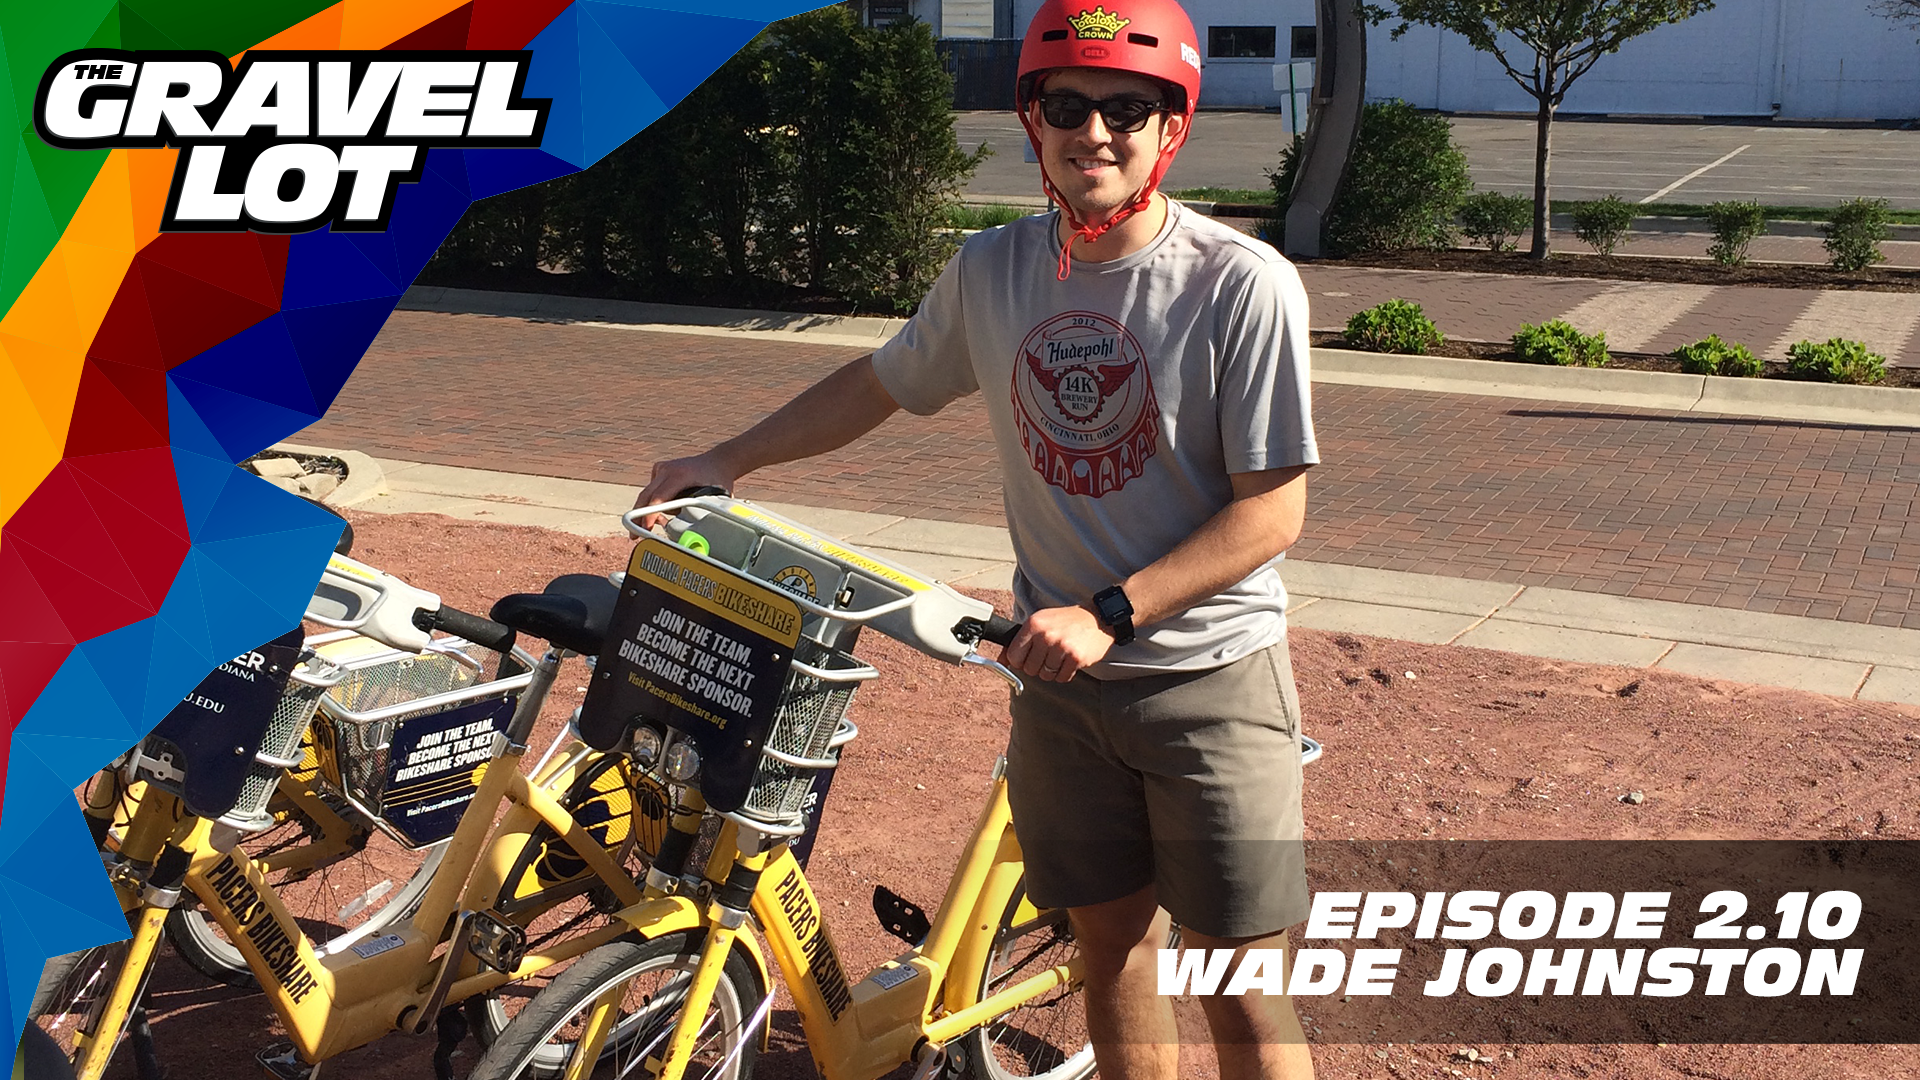 "Episode 62: Wade Johnston, the Director of Tri-State Trails in Cincinnati, Ohio joins us this week to discuss how to build rich connections and infrastructure to provide trails for all. We also talk about who is doing it well, and not so well.   Visit The Gravel Lot website for our latest podcast, Real Talk videos, Bonus Content, shop, social media, and everything in between.    Save 50% on your next RoadID:    Handup Gloves: Use code ""PEBBLES"" for 20% off EVERYTHING in store.    Be Free Ride Bikes:    Noxgear: Use code ""PEBBLES"" for 35% off any item.    Magas Law Firm:   Subscribe to The Gravel Lot on the  Wide Angle Podium Network and become a member TODAY!"